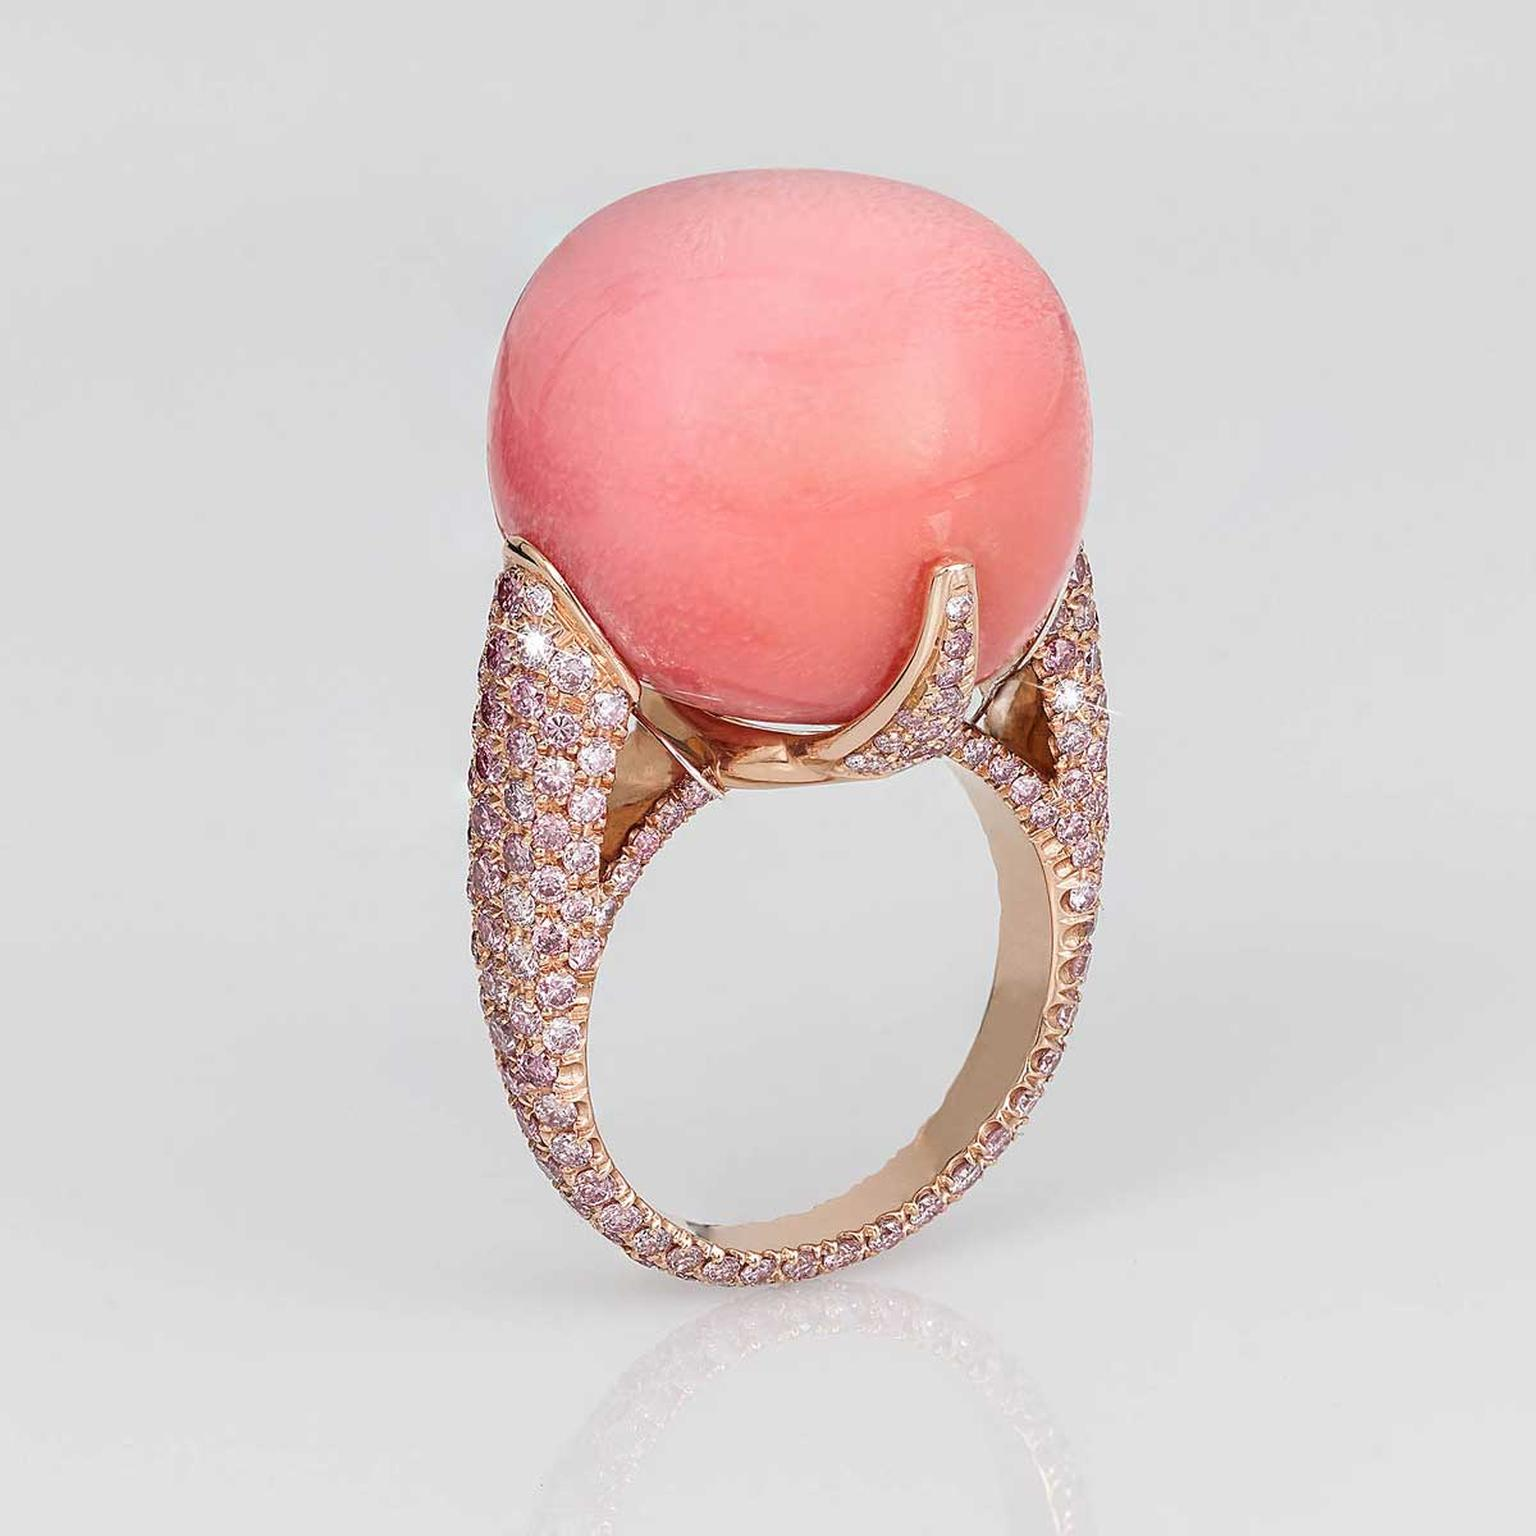 David Morris 44 carat conch pearl ring